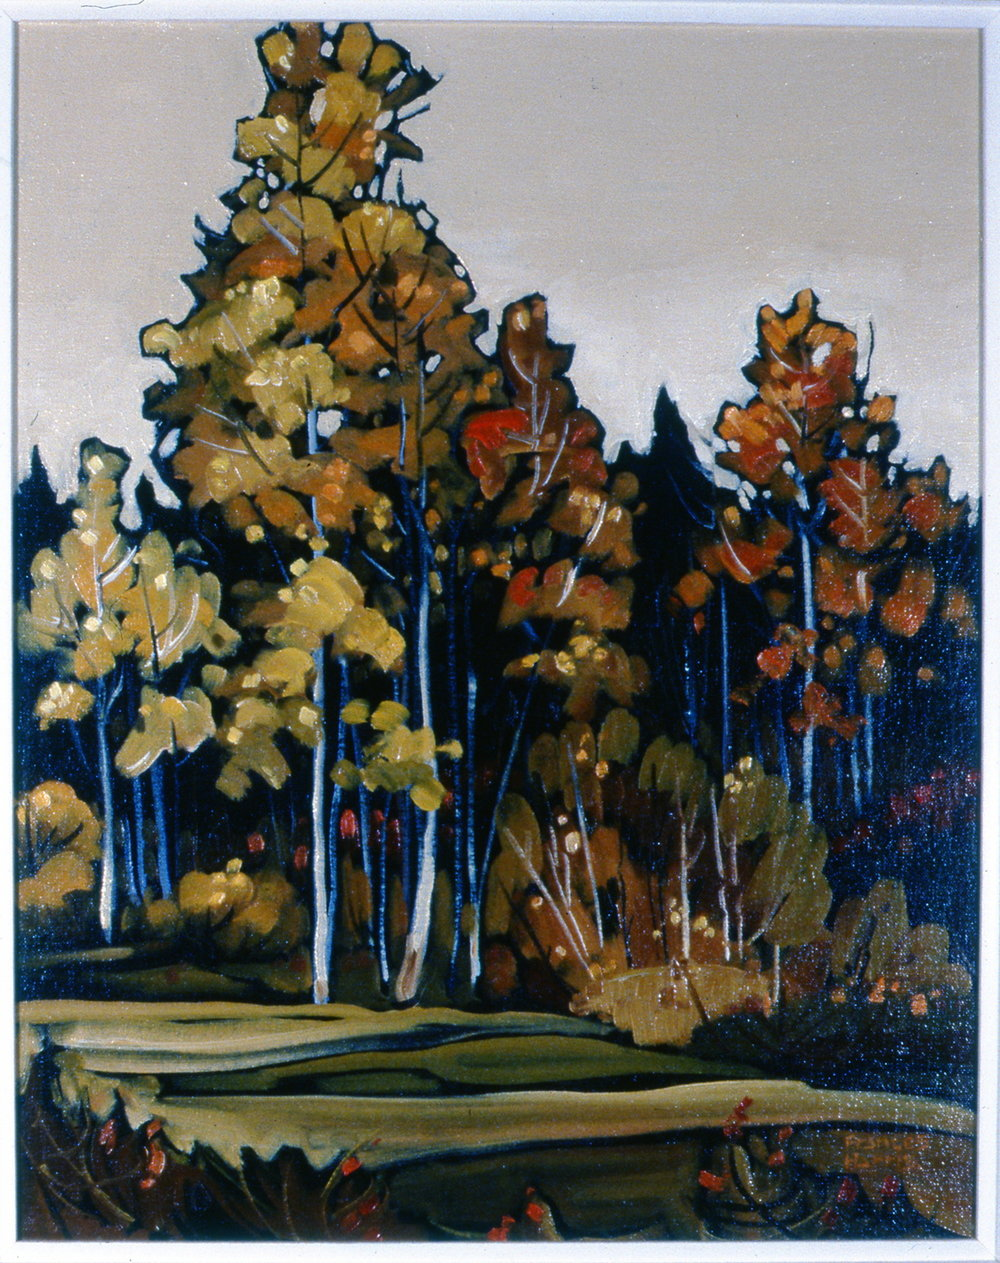 Autumn Fantasy,  1979, Frances Harris, oil on board, 51 cm x 40 1/2 cm, 2002.01.01, gift of Harold Cairns